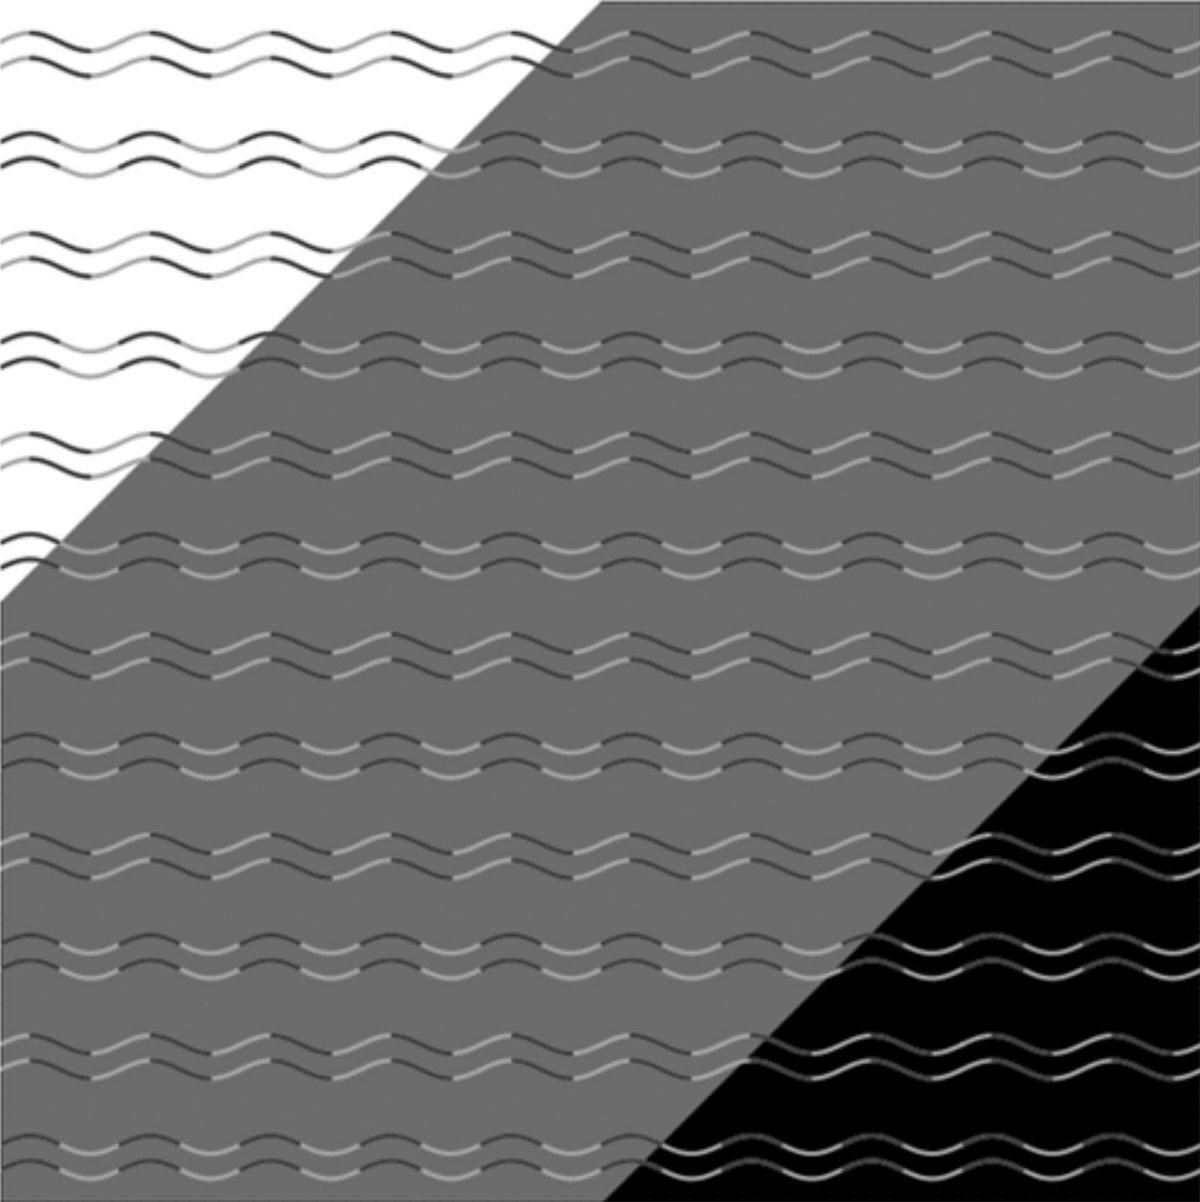 This New Optical Illusion Will Baffle Your Brain!